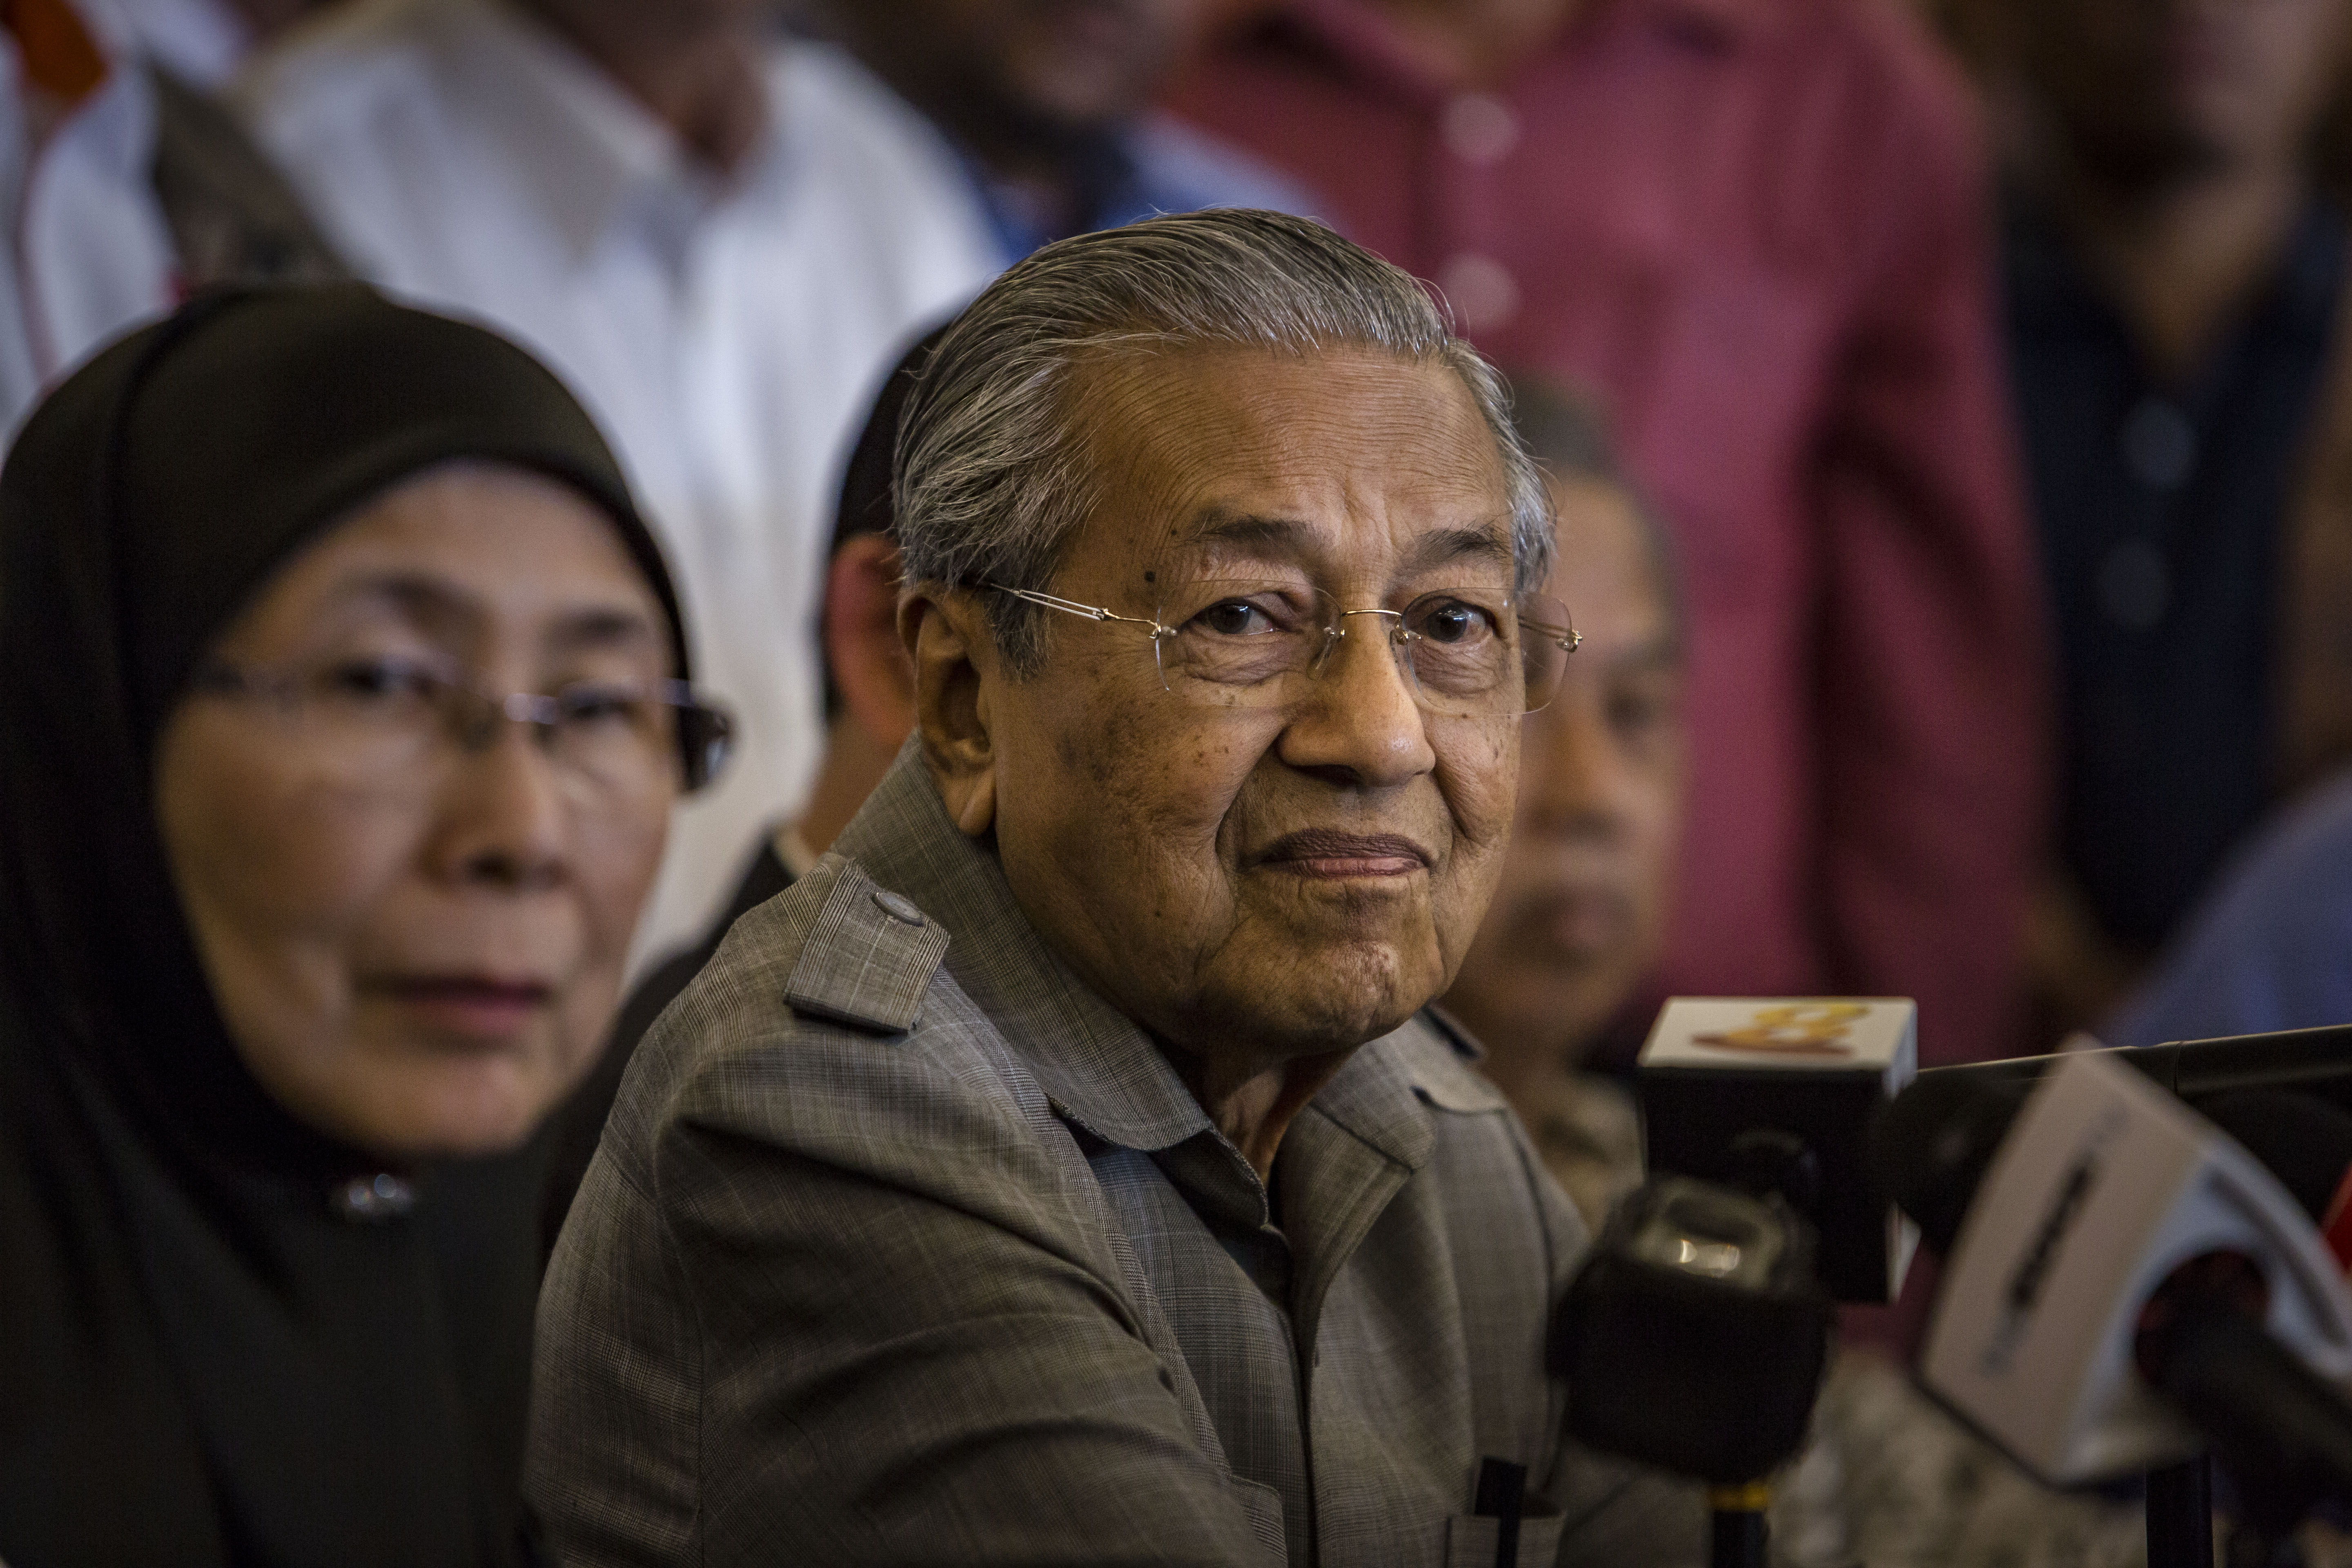 Mahathir Mohamad, chairman of 'Pakatan Harapan' during press conference following the 14th general election on May 10, 2018 in Kuala Lumpur, Malaysia.